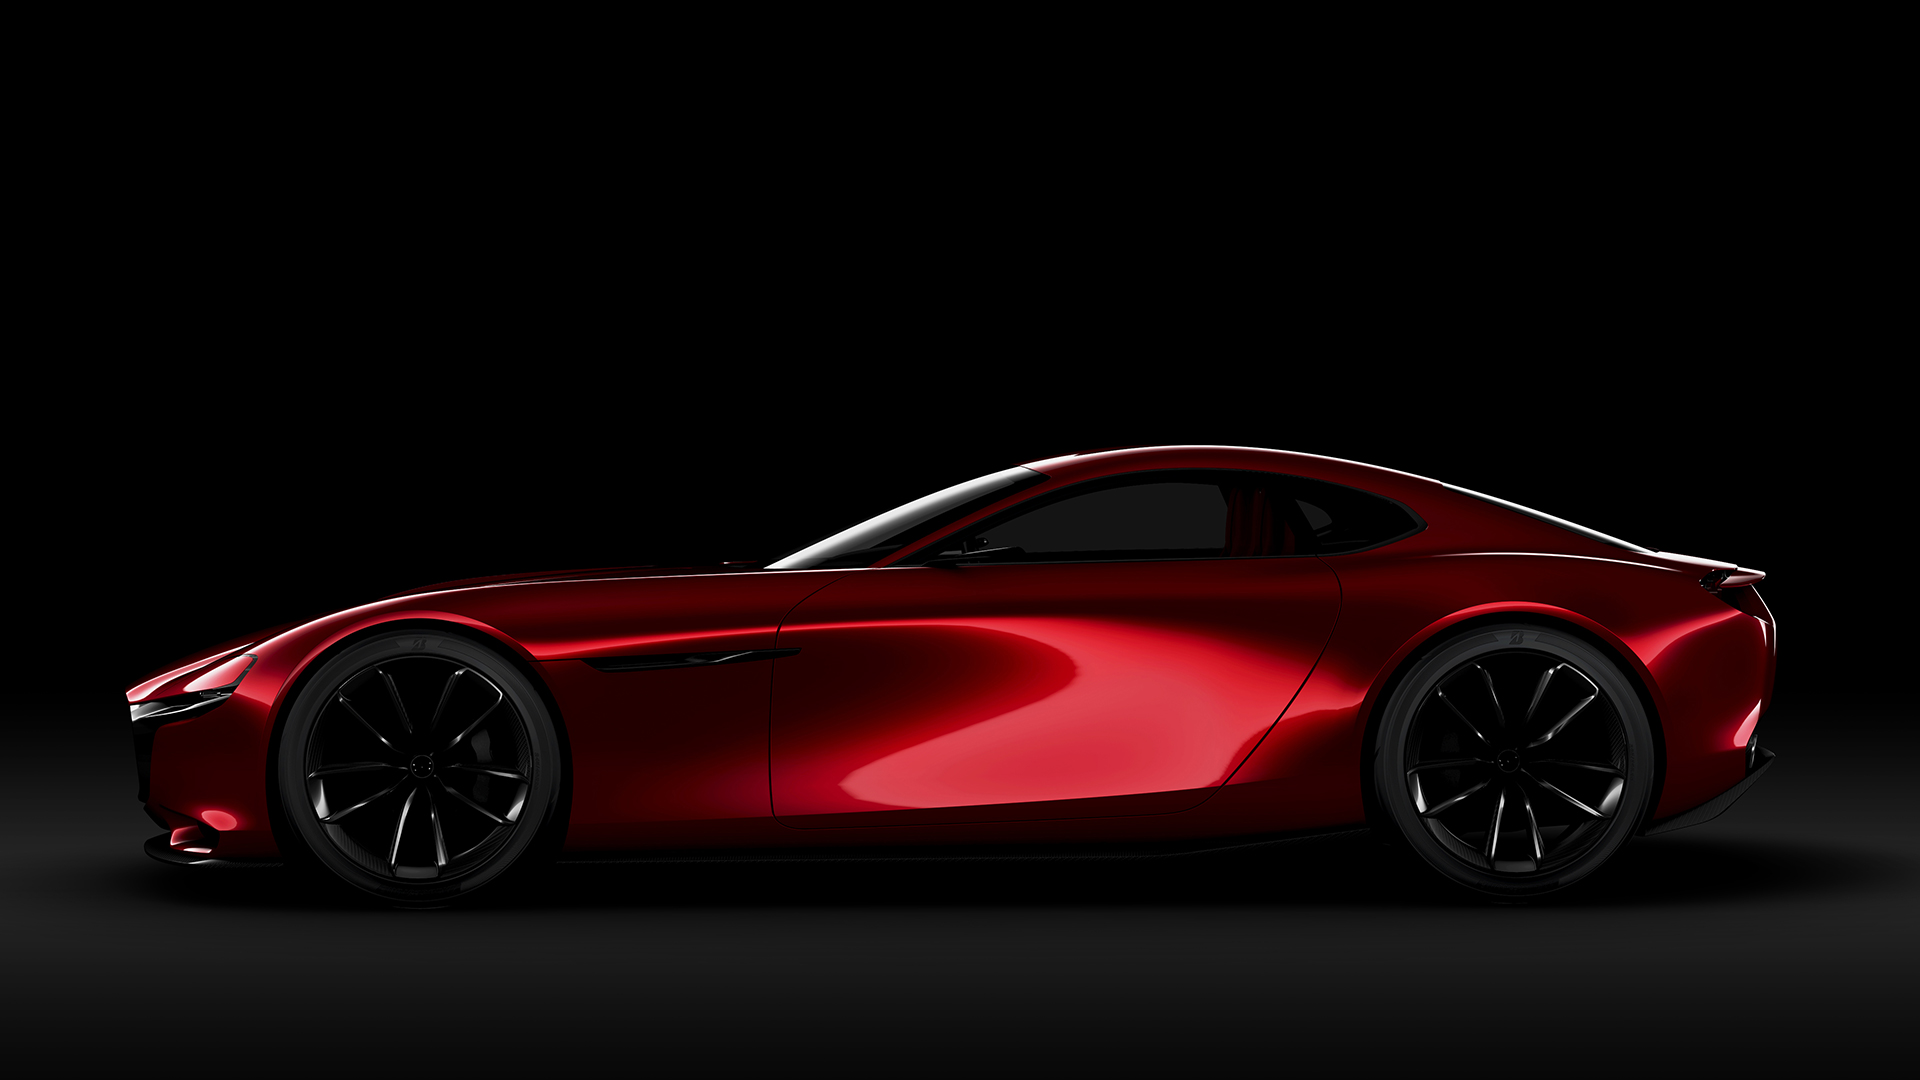 mazda rx vision concept annon ant le futur moteur rotor. Black Bedroom Furniture Sets. Home Design Ideas